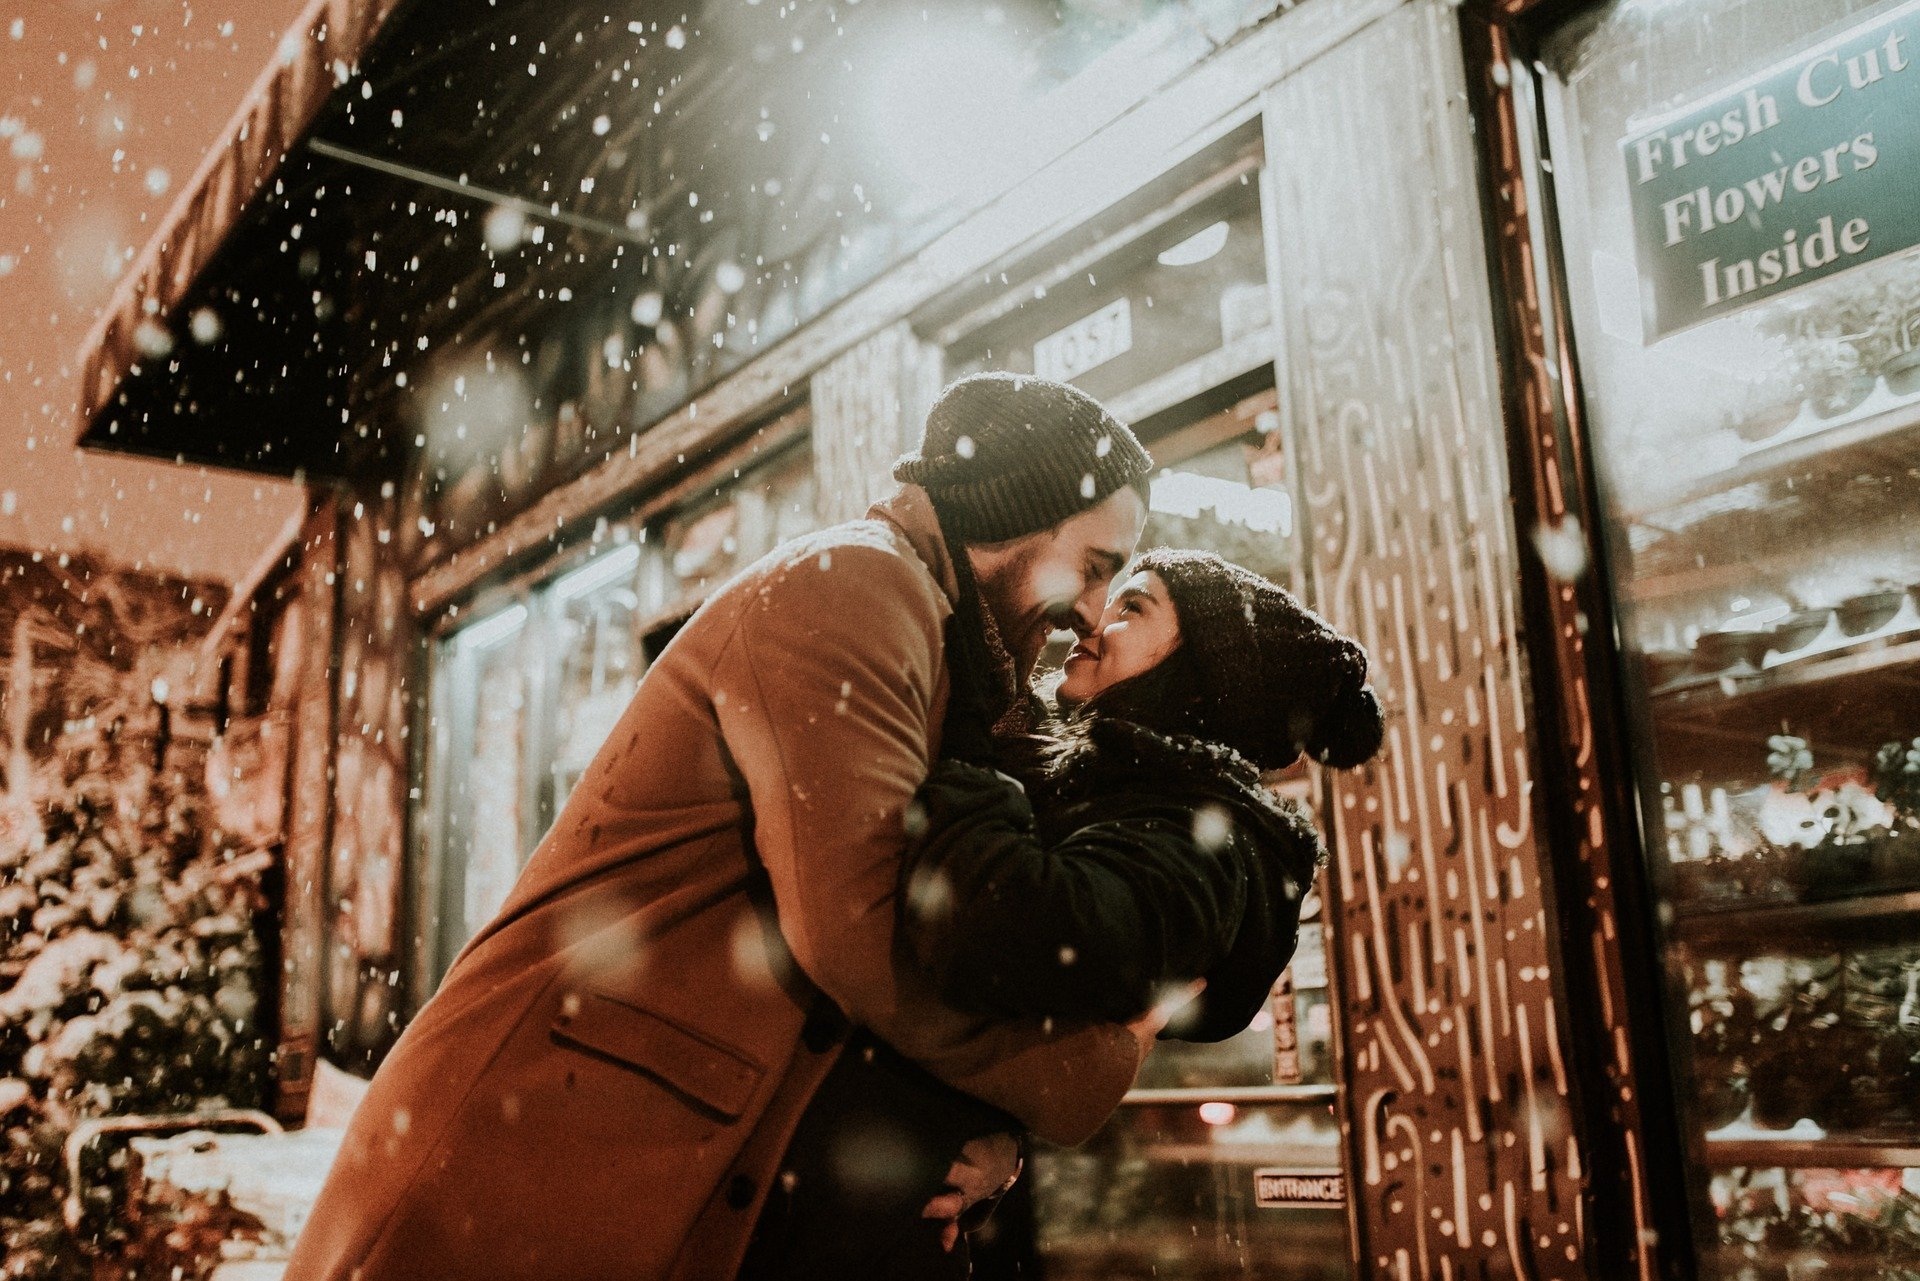 A couple embracing outside a flower shop while it snows   Photo: Pixabay/StockSnap